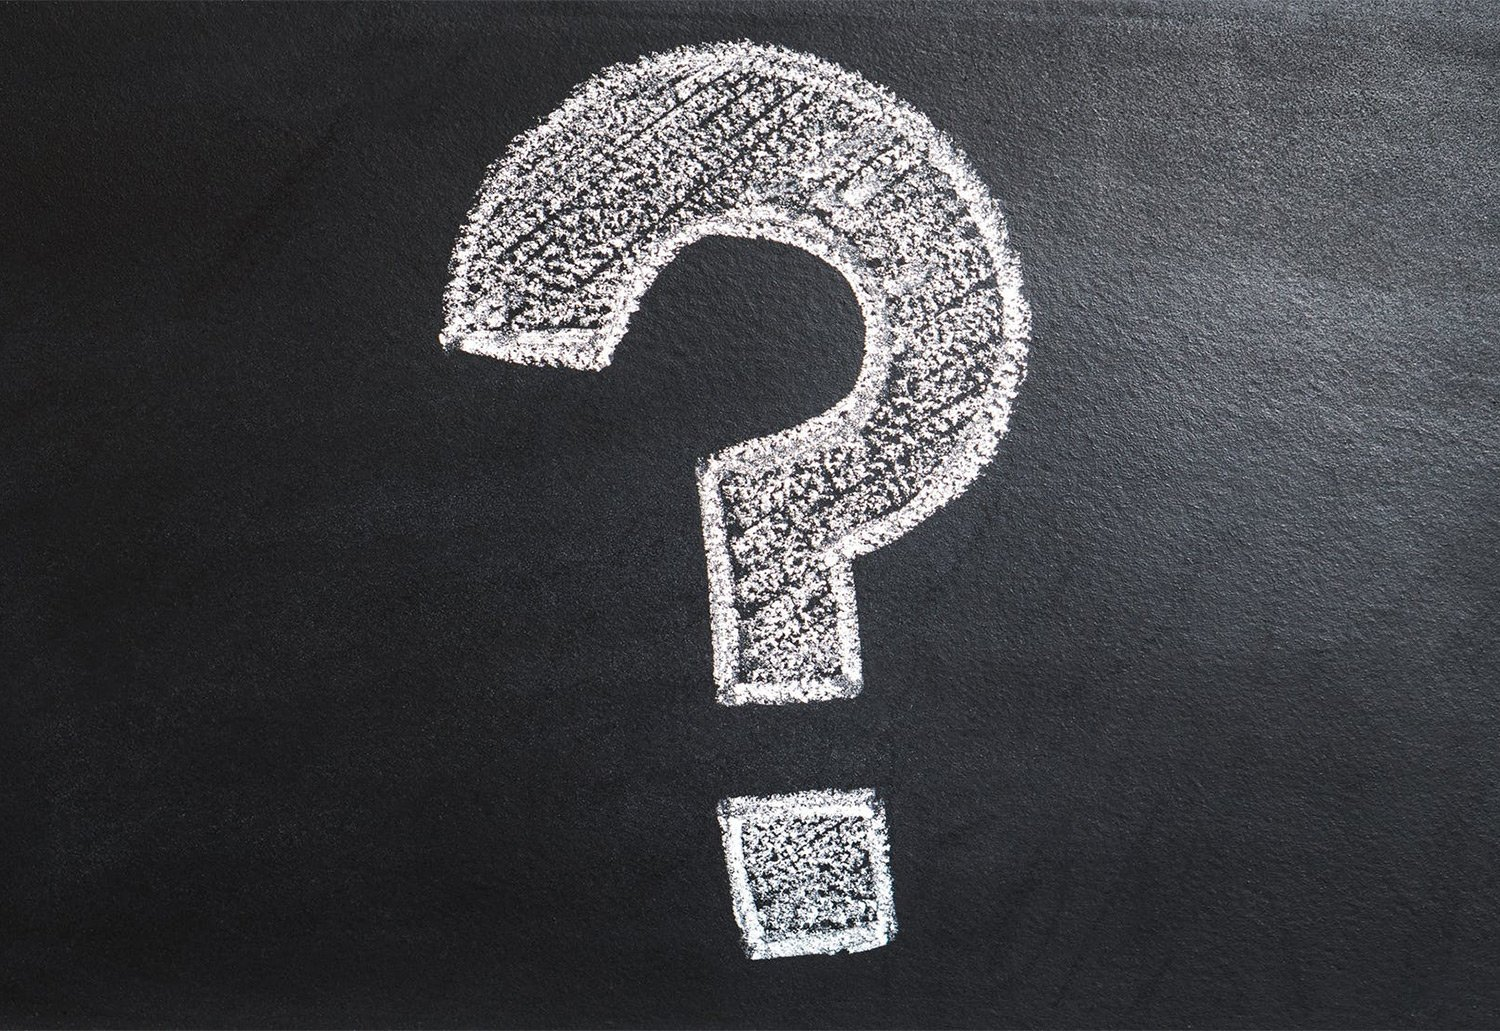 10 Marketing Questions To Ask Yourself Before The End Of 2019